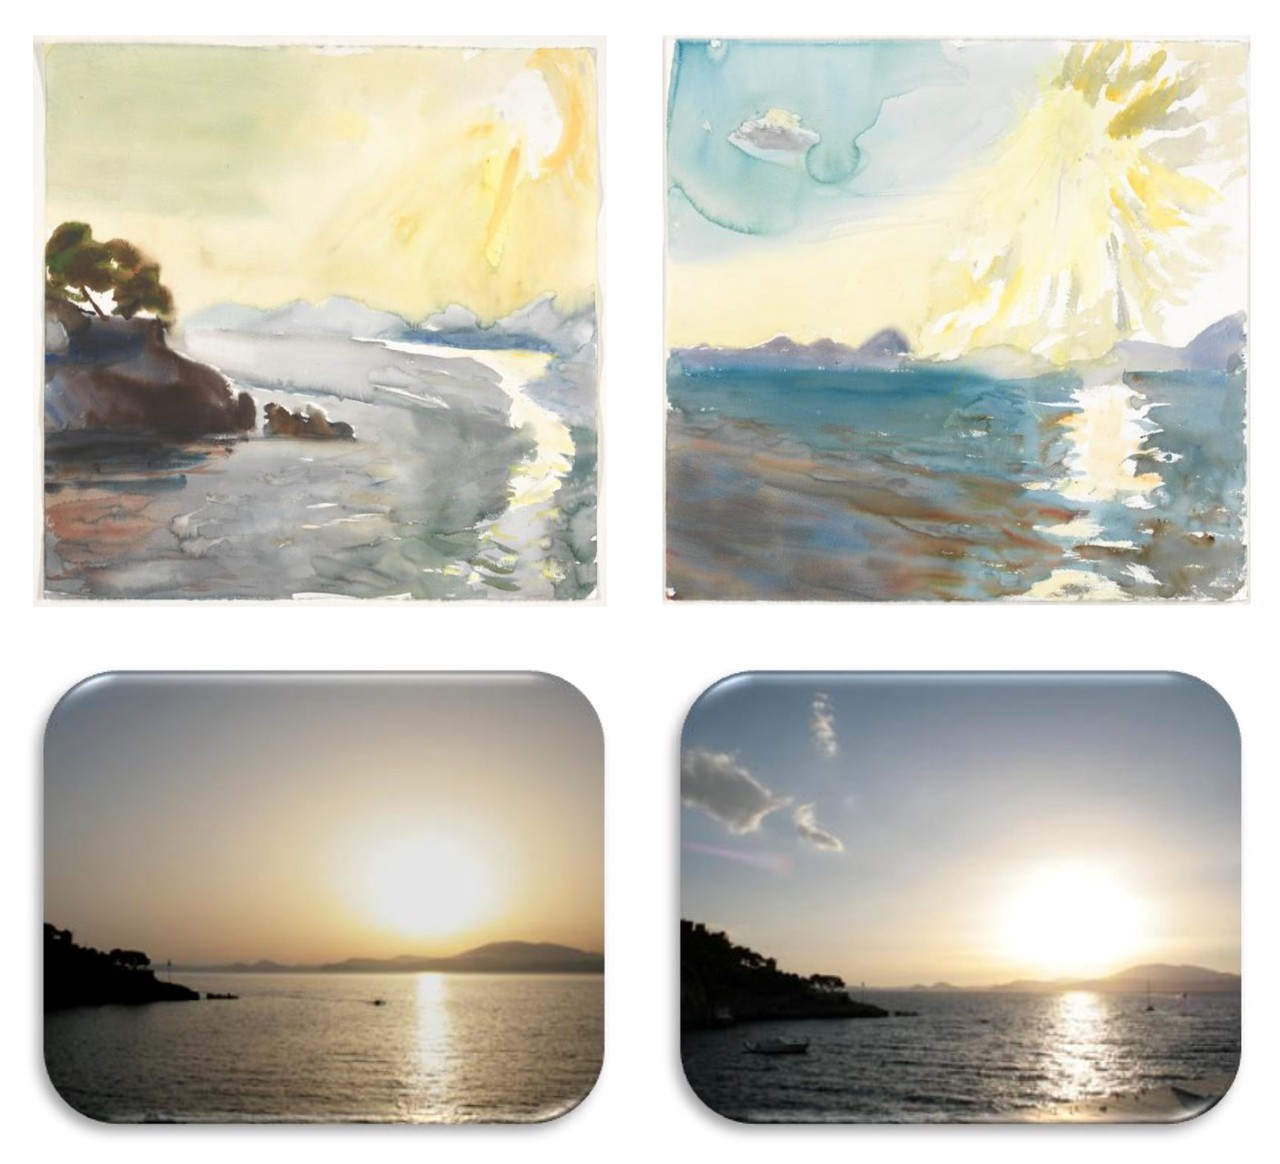 Sunset paintings and photographies (Island of Hydra, June 2010) (Credit: P. Tetsis (paintings) and C. Zerefos (photos))